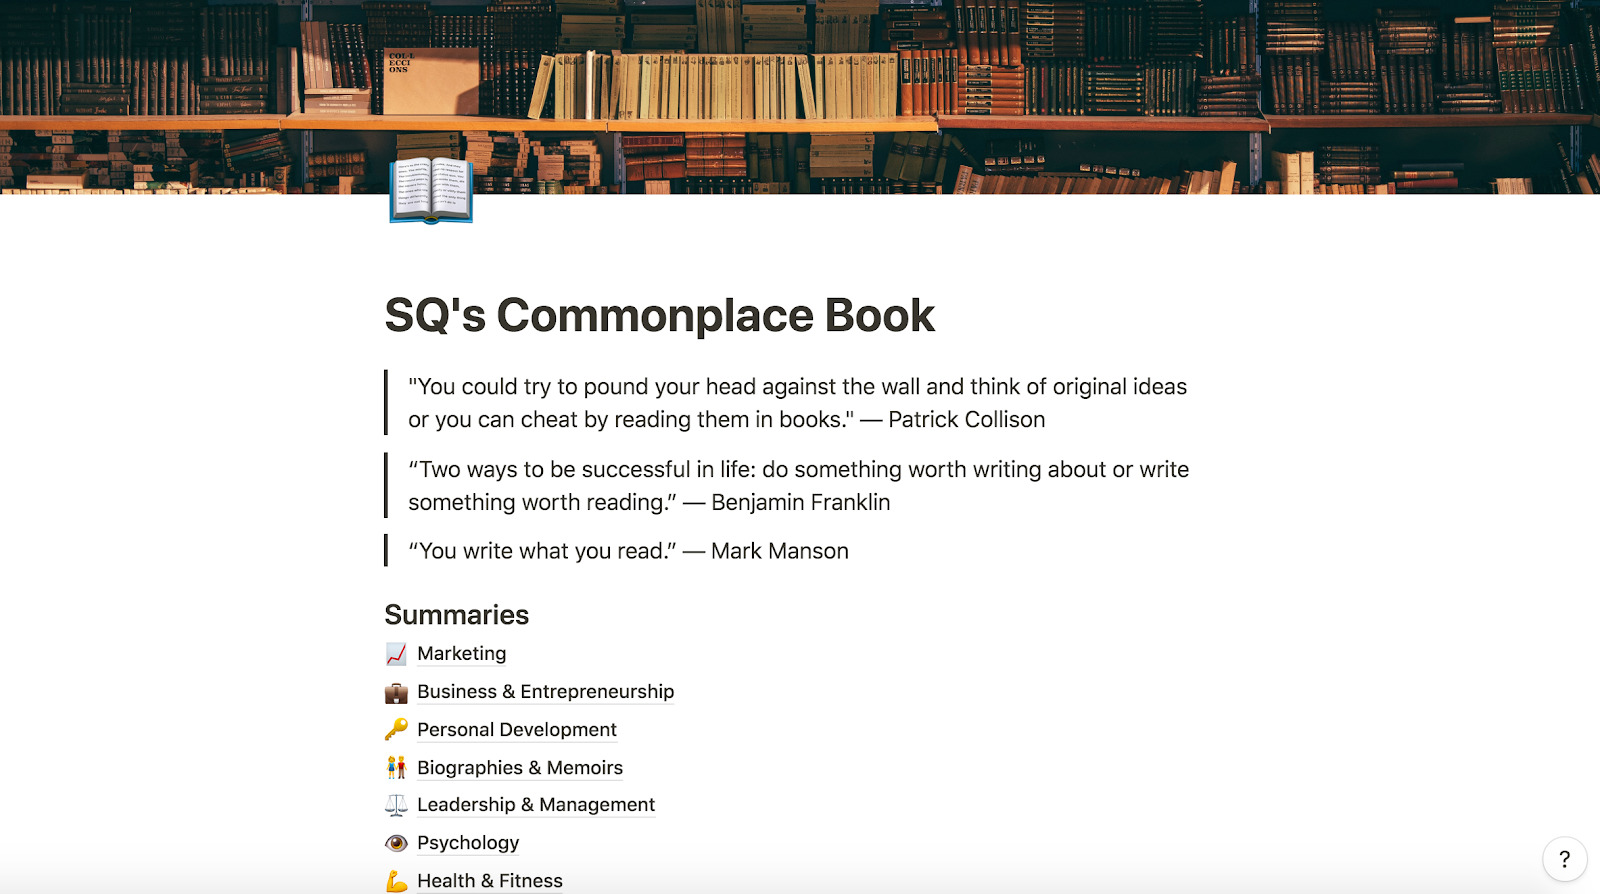 SQ s Commonplace Book